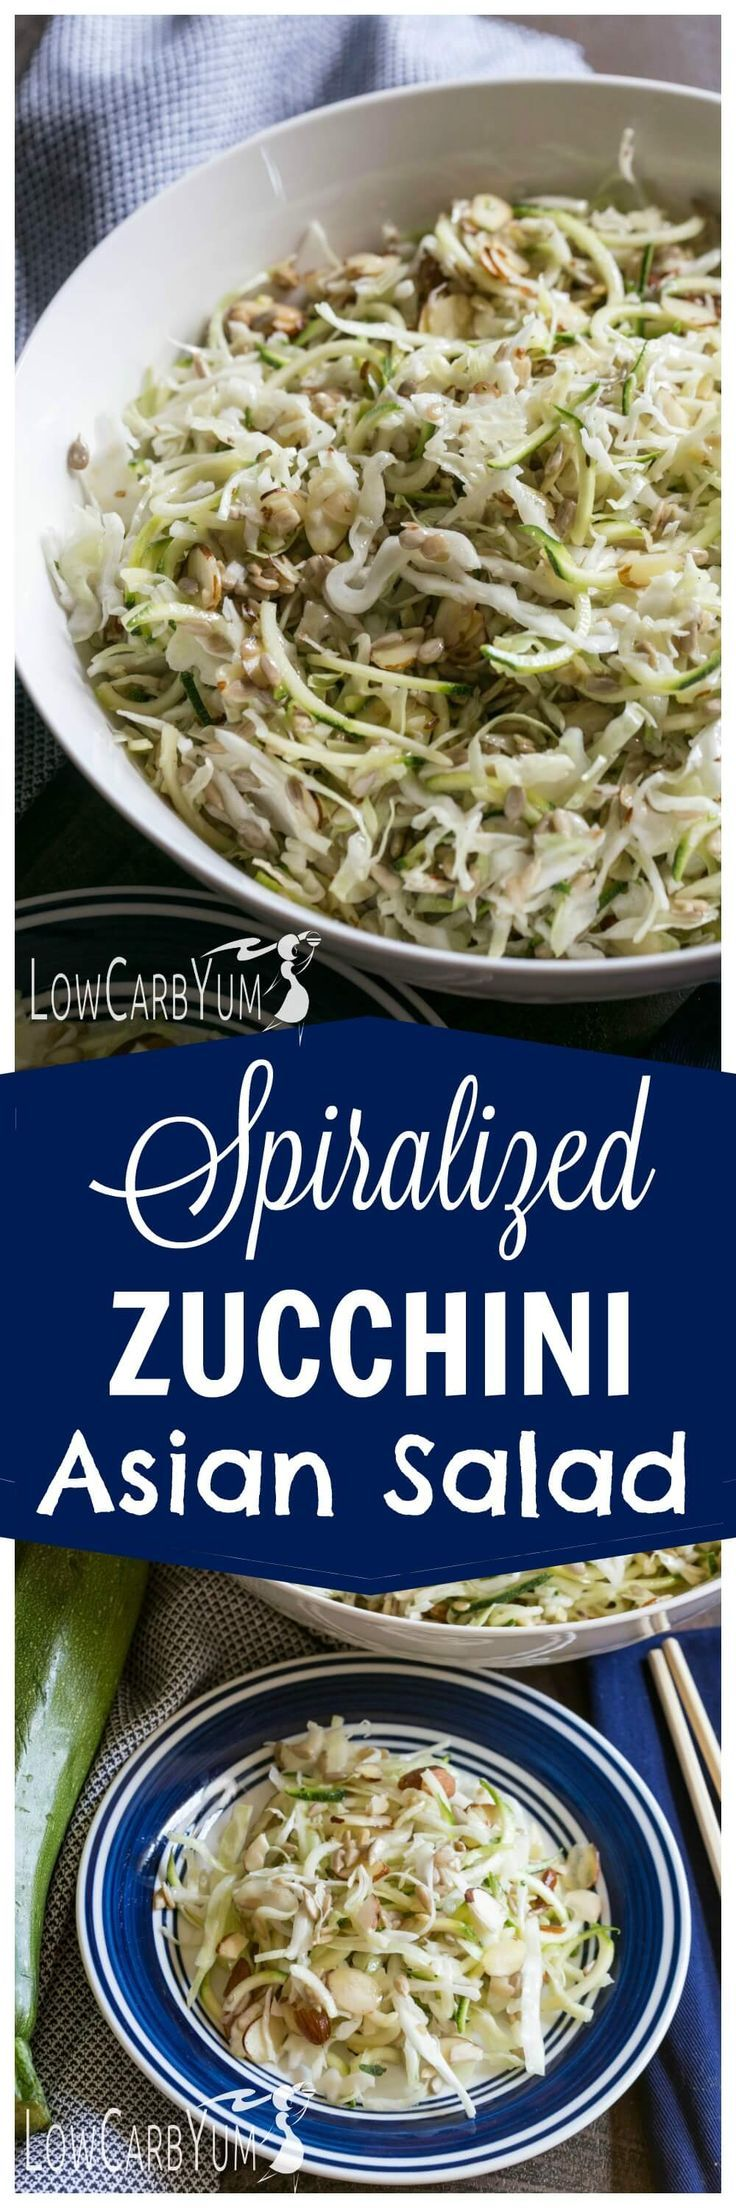 You'll enjoy this refreshing spiralized zucchini Asian salad on those lazy hot summer days. No cooking involved. Just mix and chill this side dish. | http://LowCarbYum.com